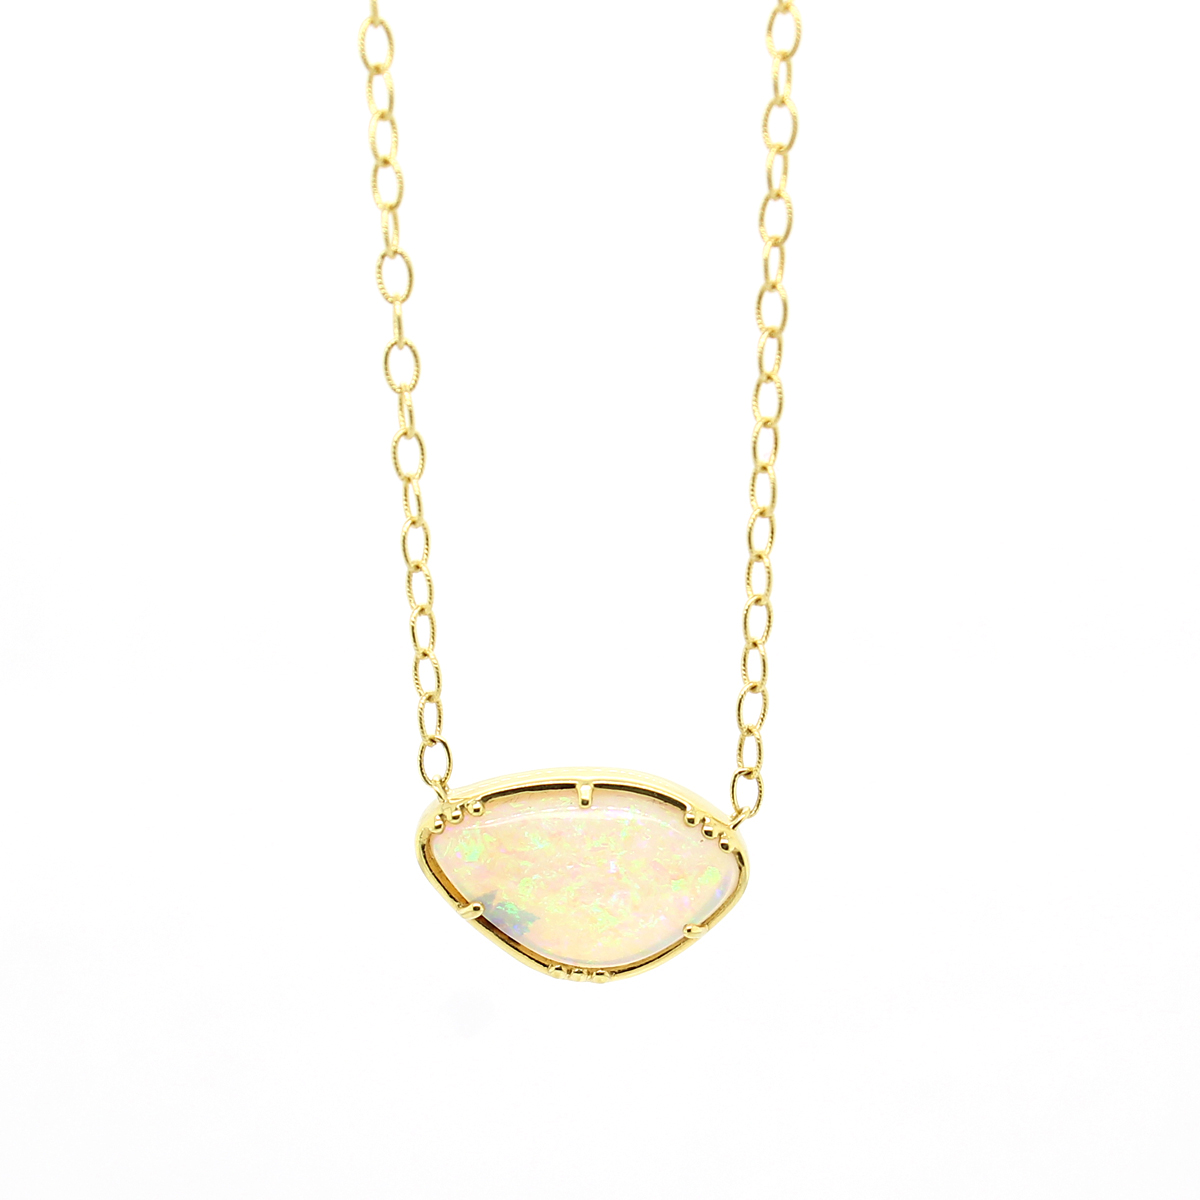 Lauren K 18 Karat Yellow Gold Opal Hope Necklace